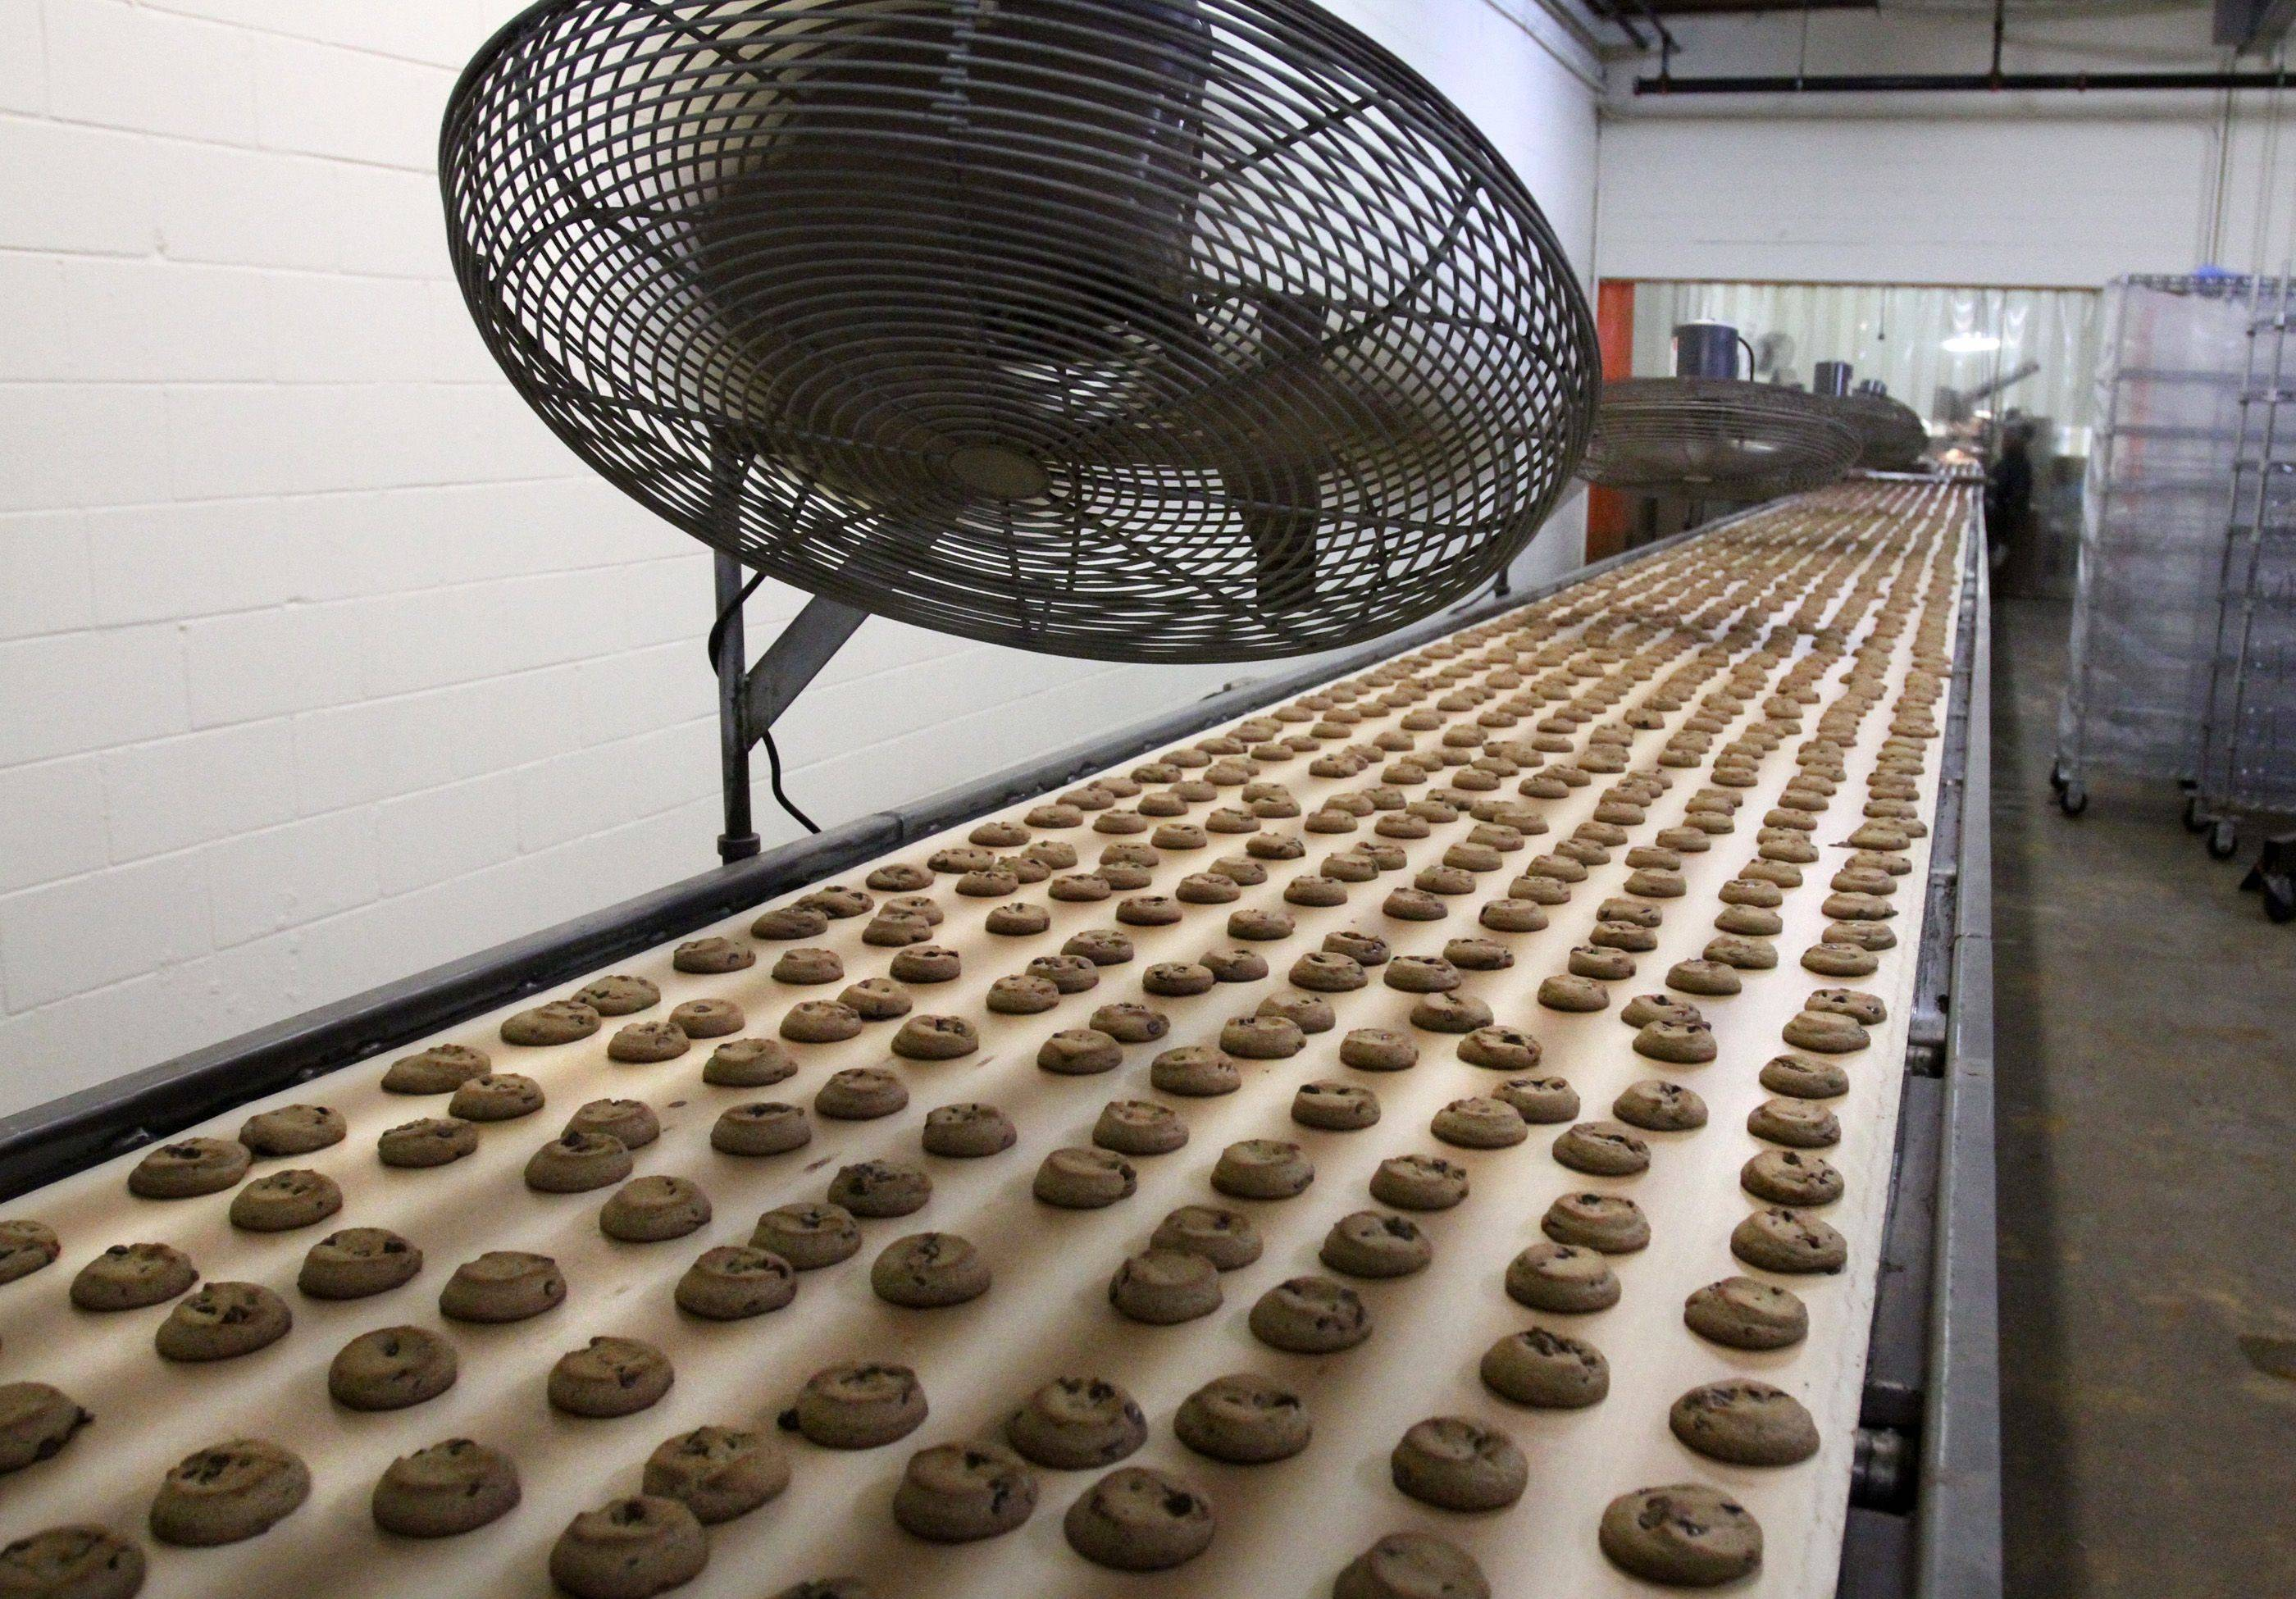 Chocolate chip cookies are cooled with fans before being packaged. Matt Pierce said no two cookies are the same shape and therefor have to be hand packaged.